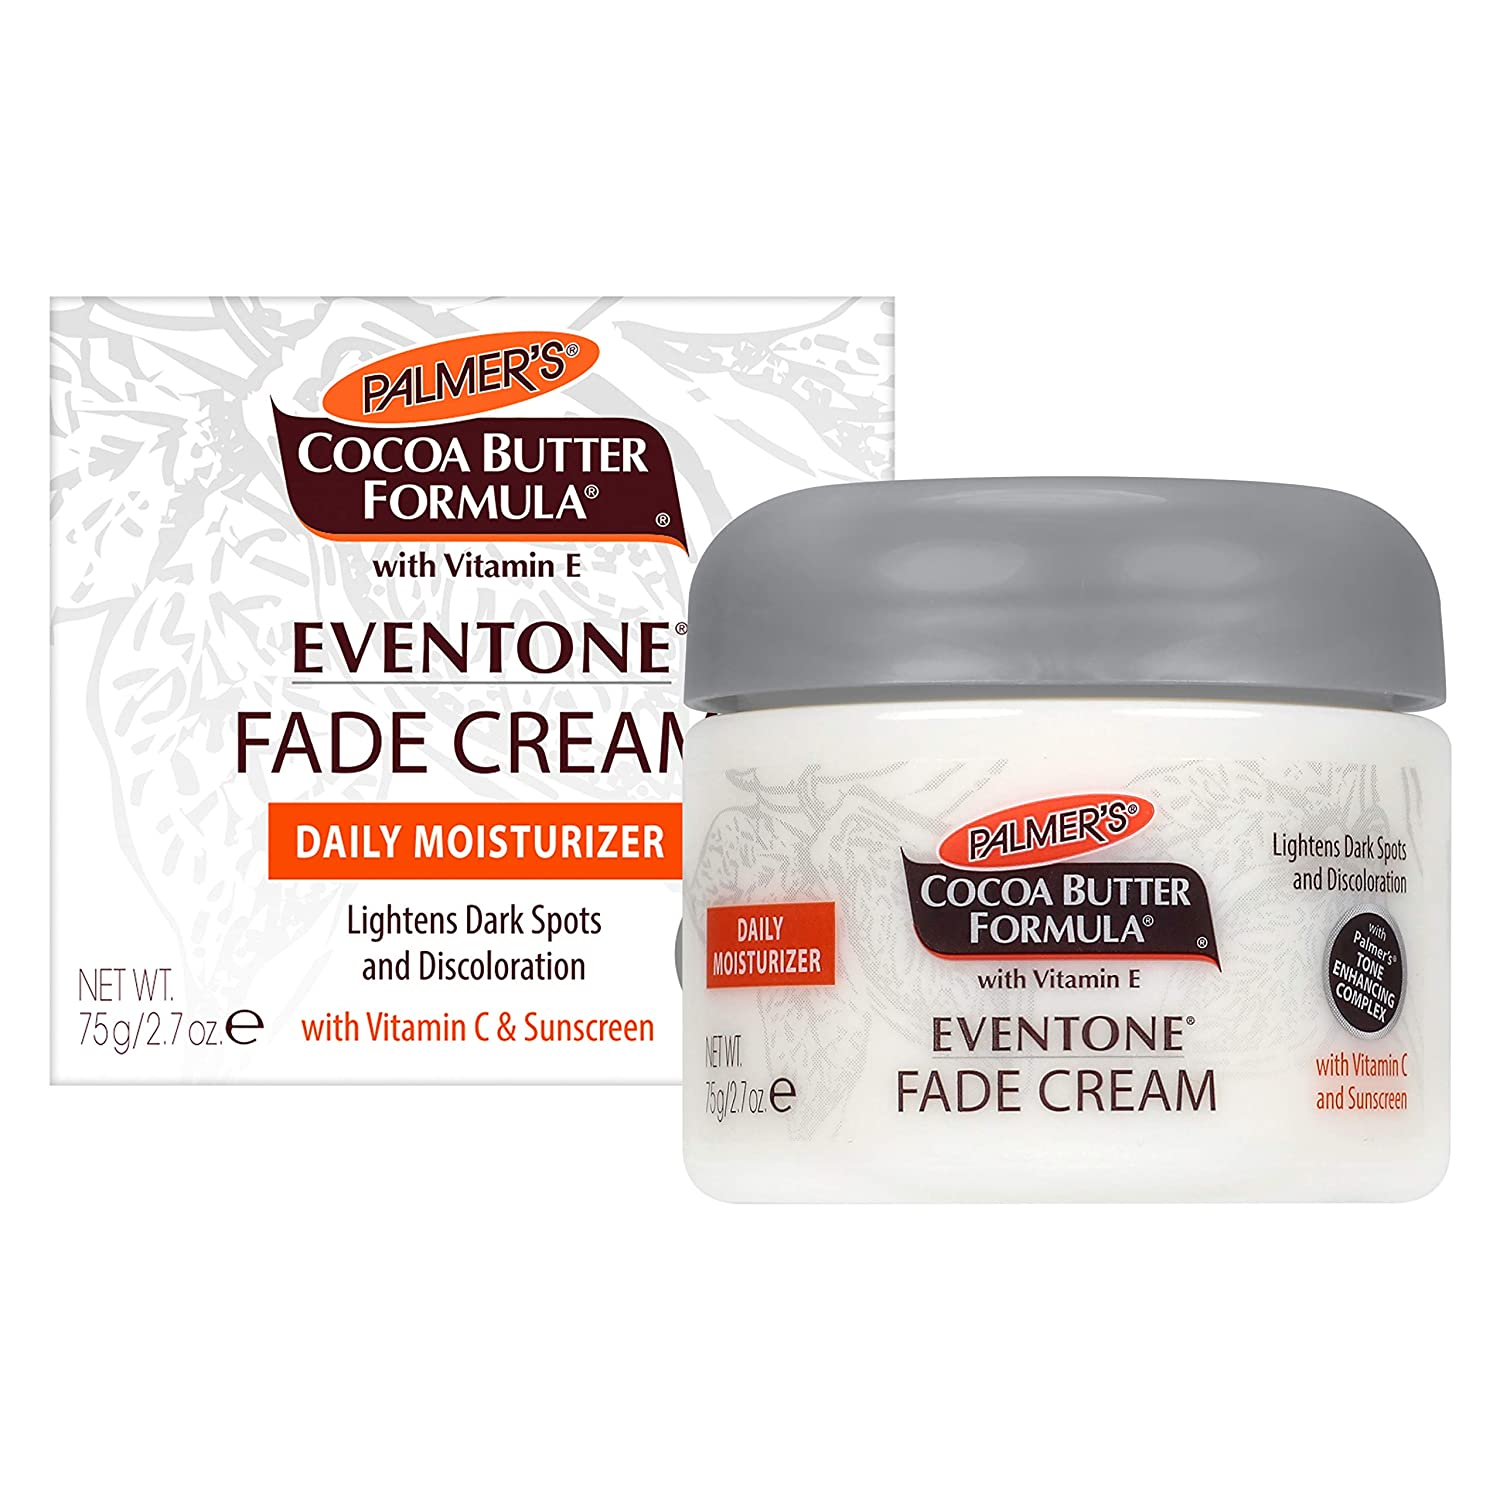 Palmer's Cocoa Butter Formula Eventone Fade Cream Daily Moisturizer for Dark Spots & Discoloration